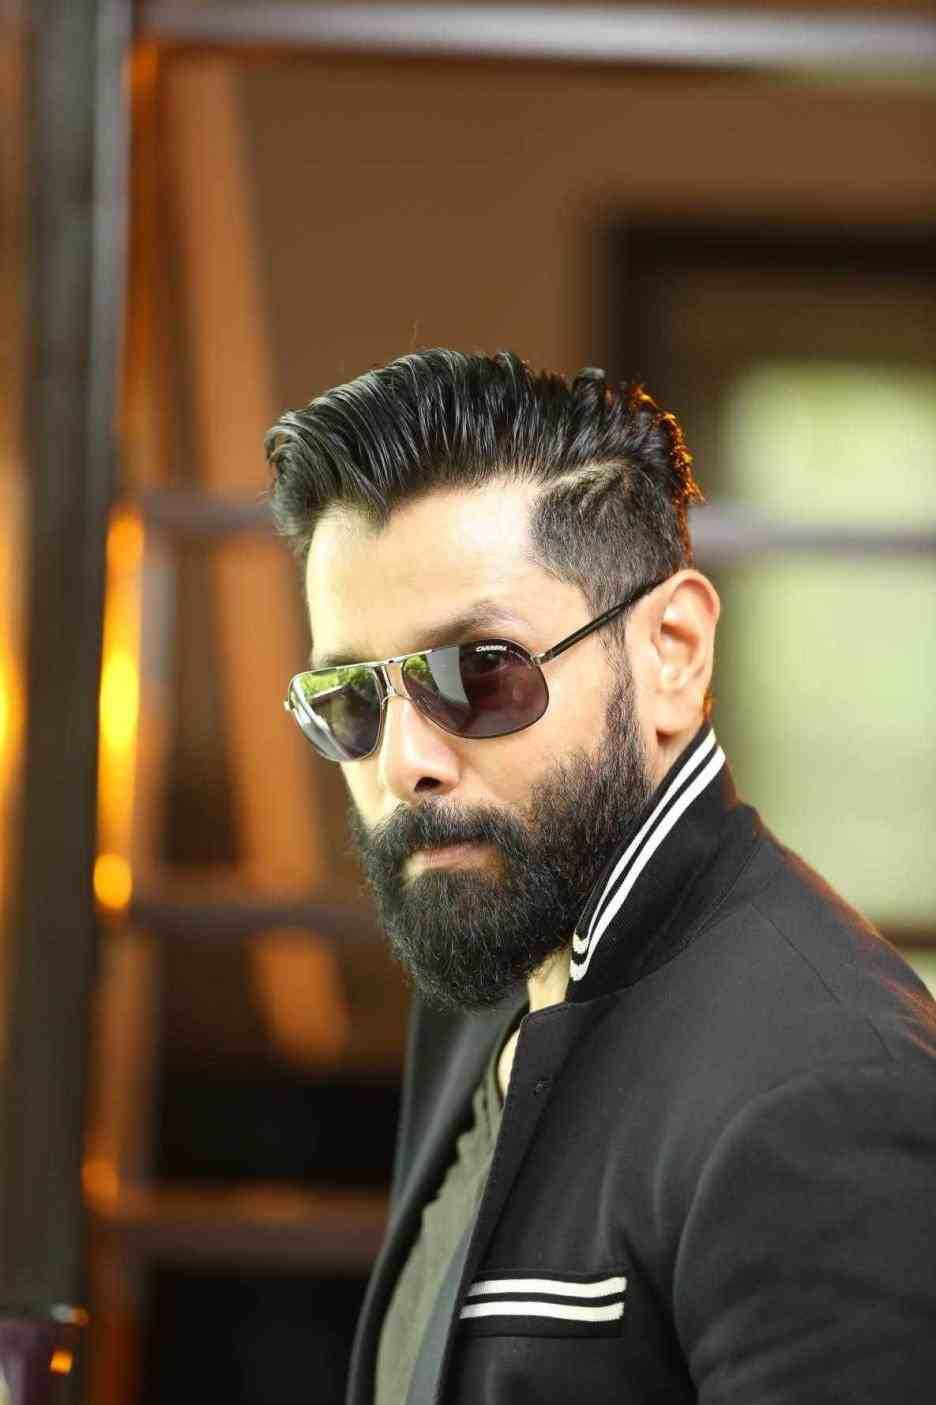 hairstyles for men indian actor | hair stylist and models